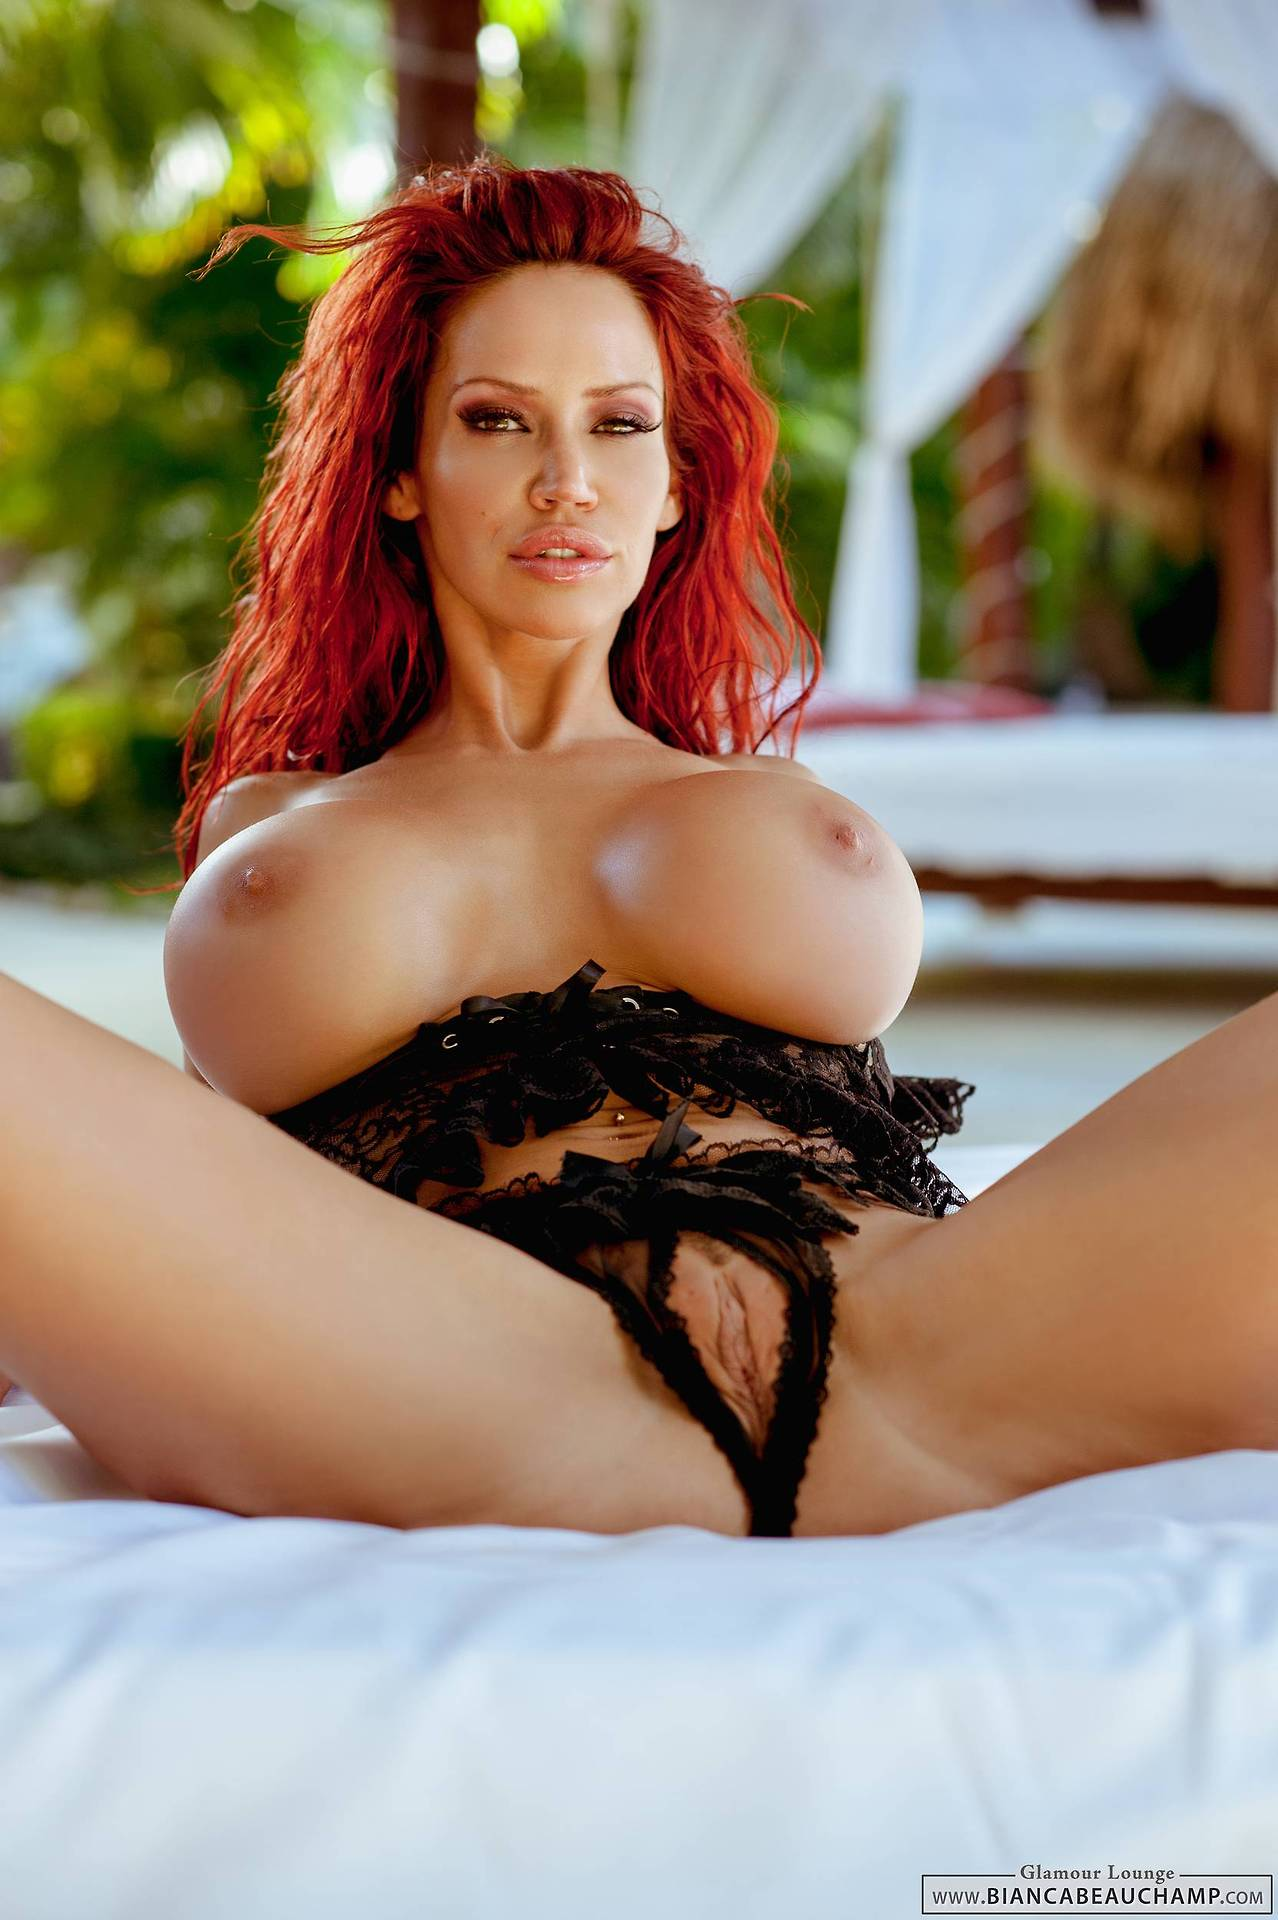 Opinion bianca beauchamp vagina consider, that